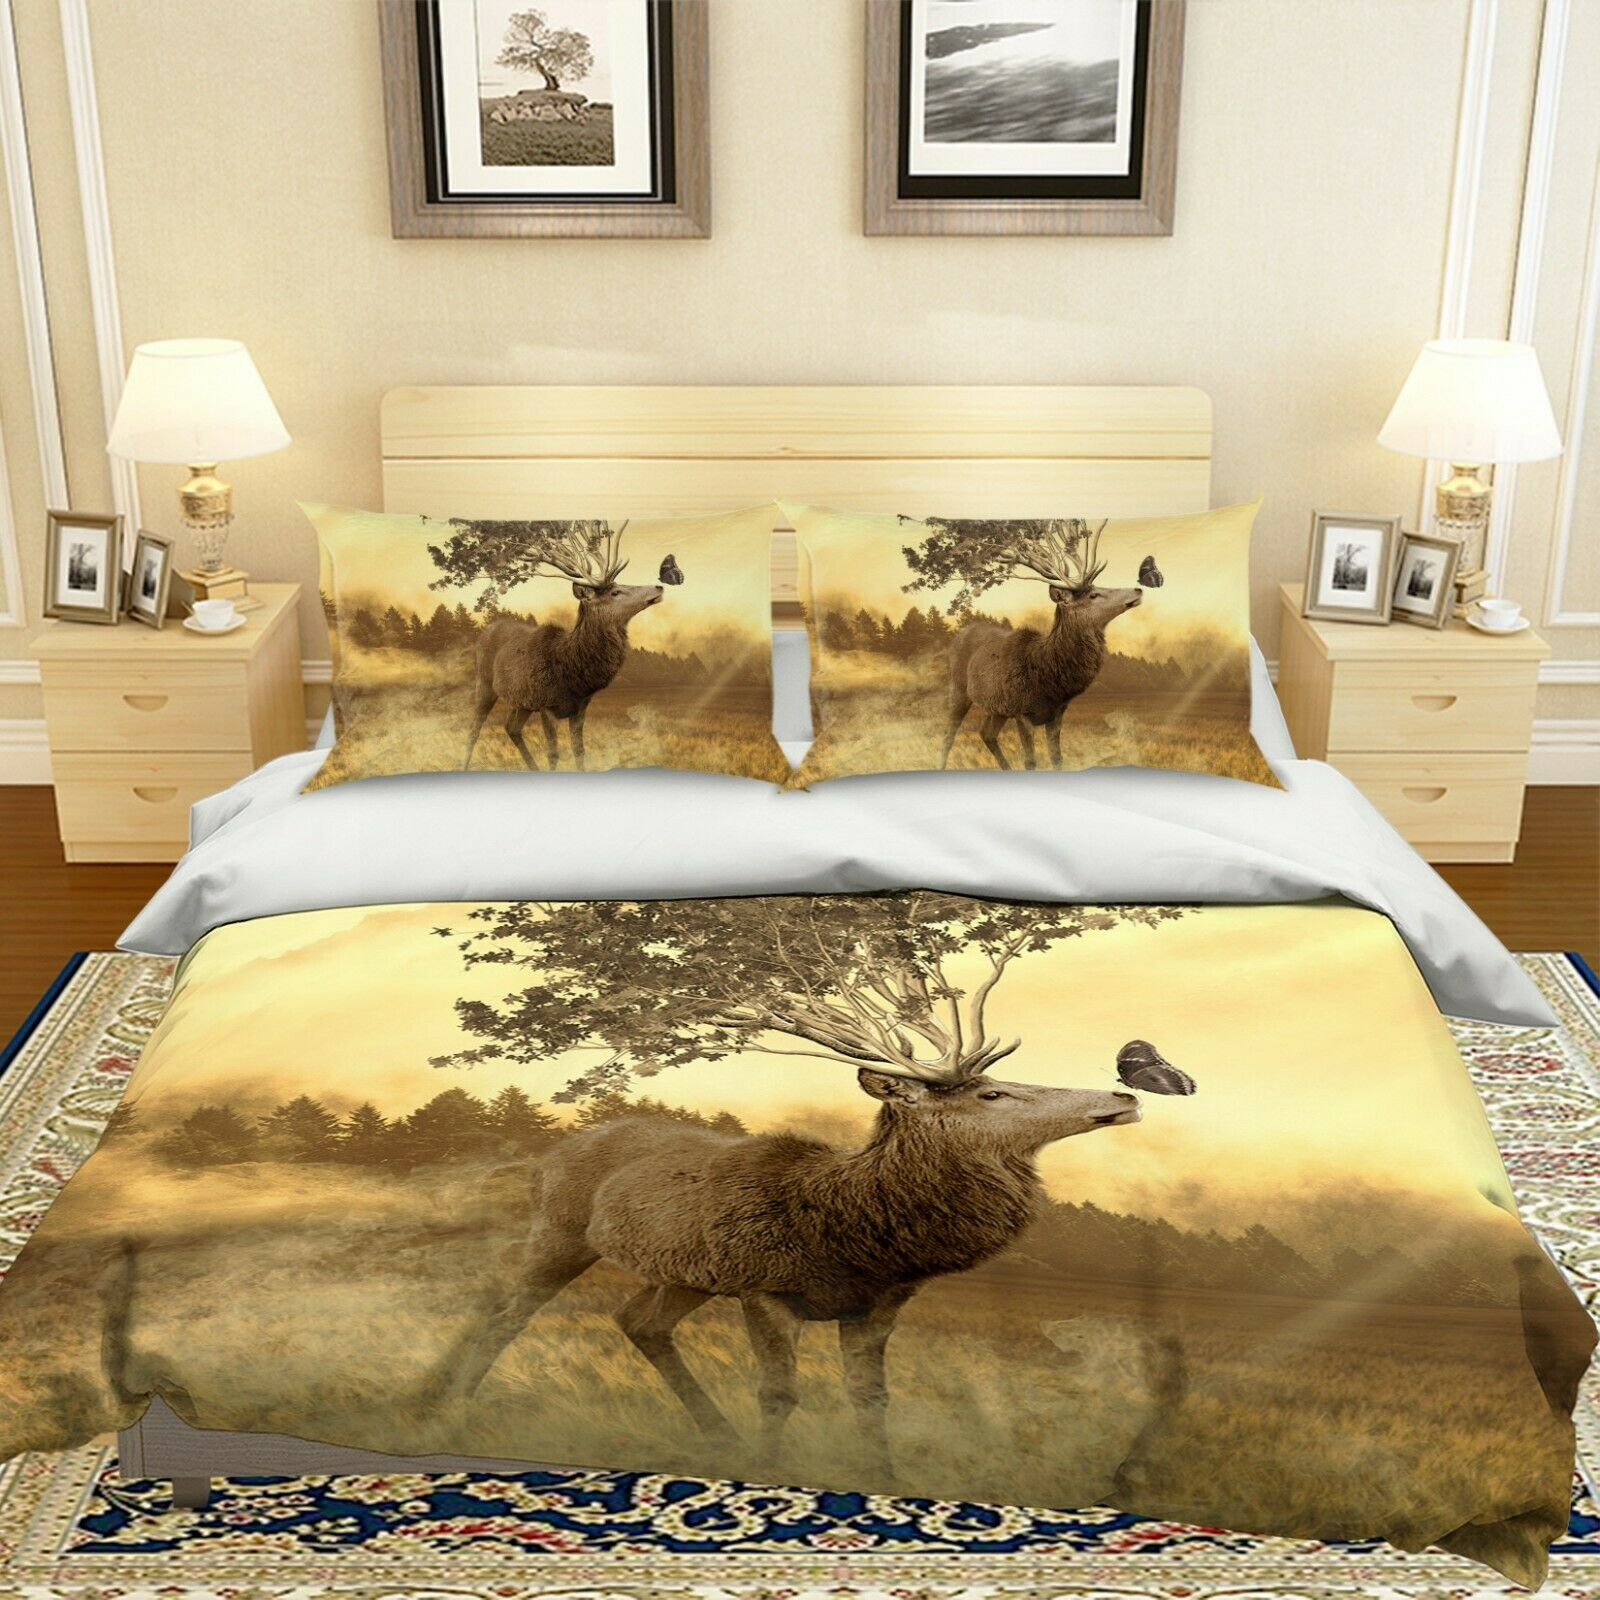 3D Elk Butterfly N56 Animal Bett Pillowcases Quilt Duvet Startseite Königin König Amy